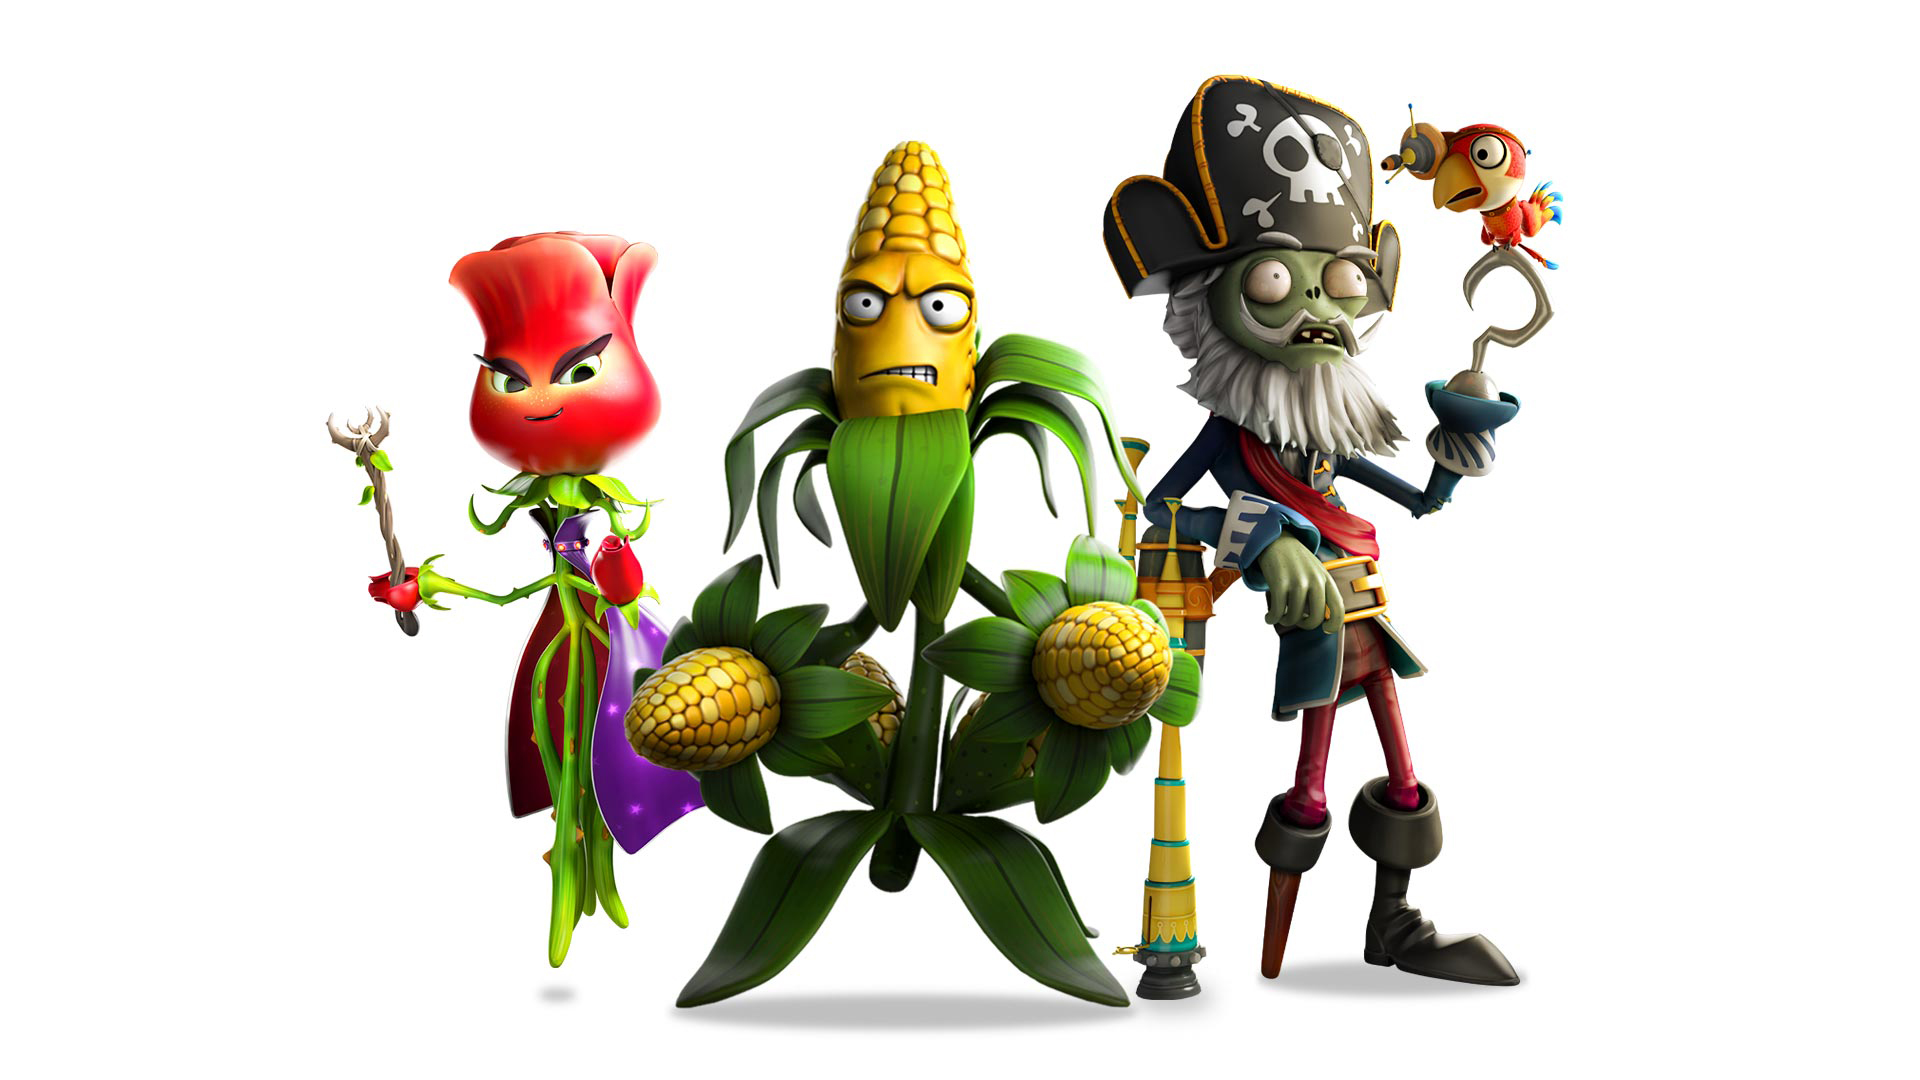 Plants vs zombies garden warfare 2 ea access and origin for Plante vs zombie garden warfare 2